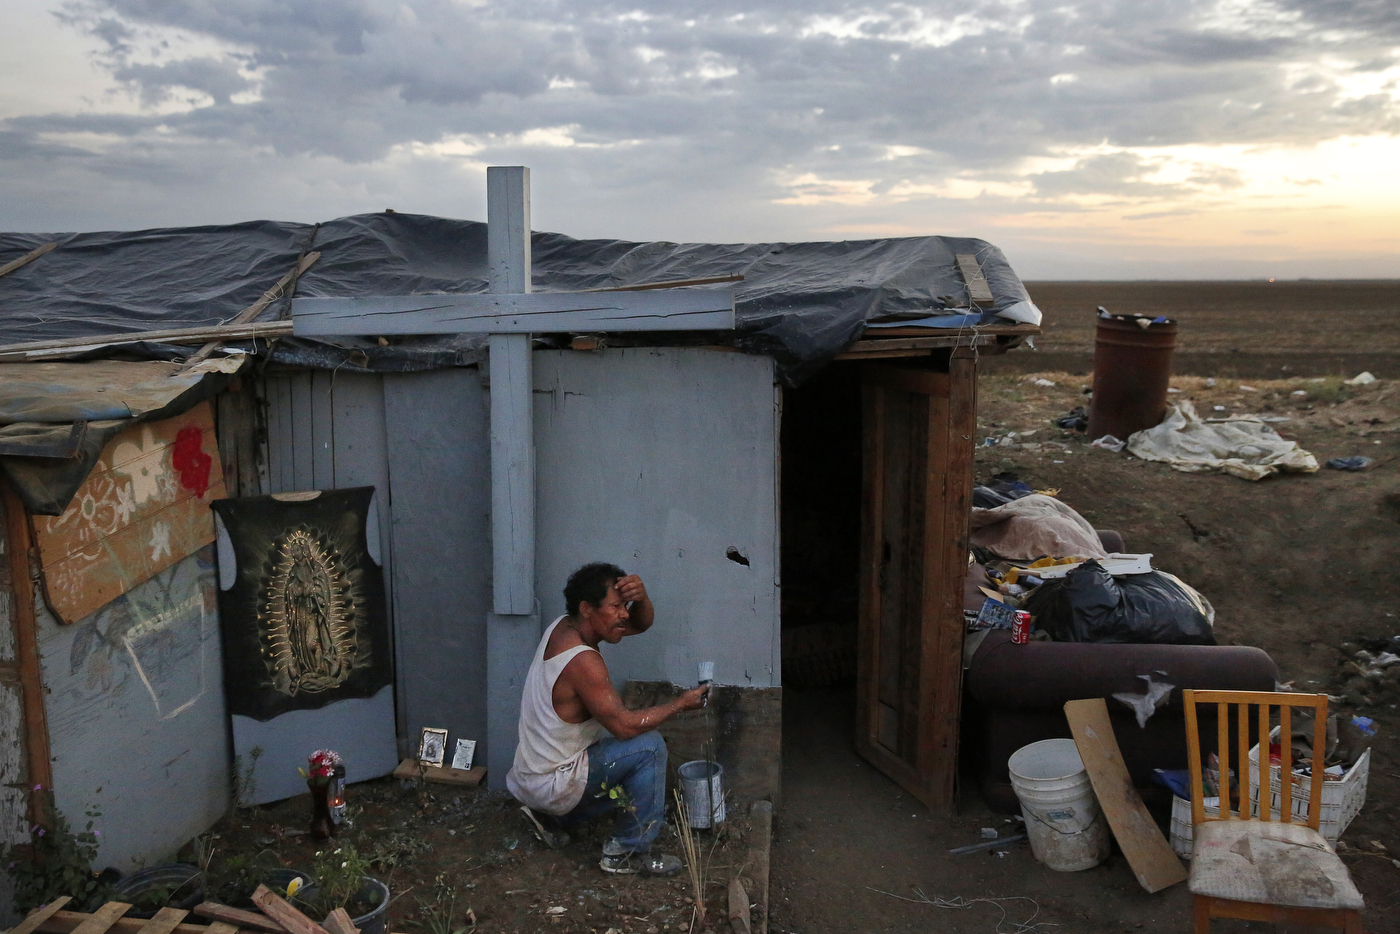 As evening falls in the shantytown, Edgar Torres Castro, 40, paints the outside of his home. Castro likes to save books from the trash and also plants various fruit trees around the encampment. He says that God told him to live out in the shantytown.